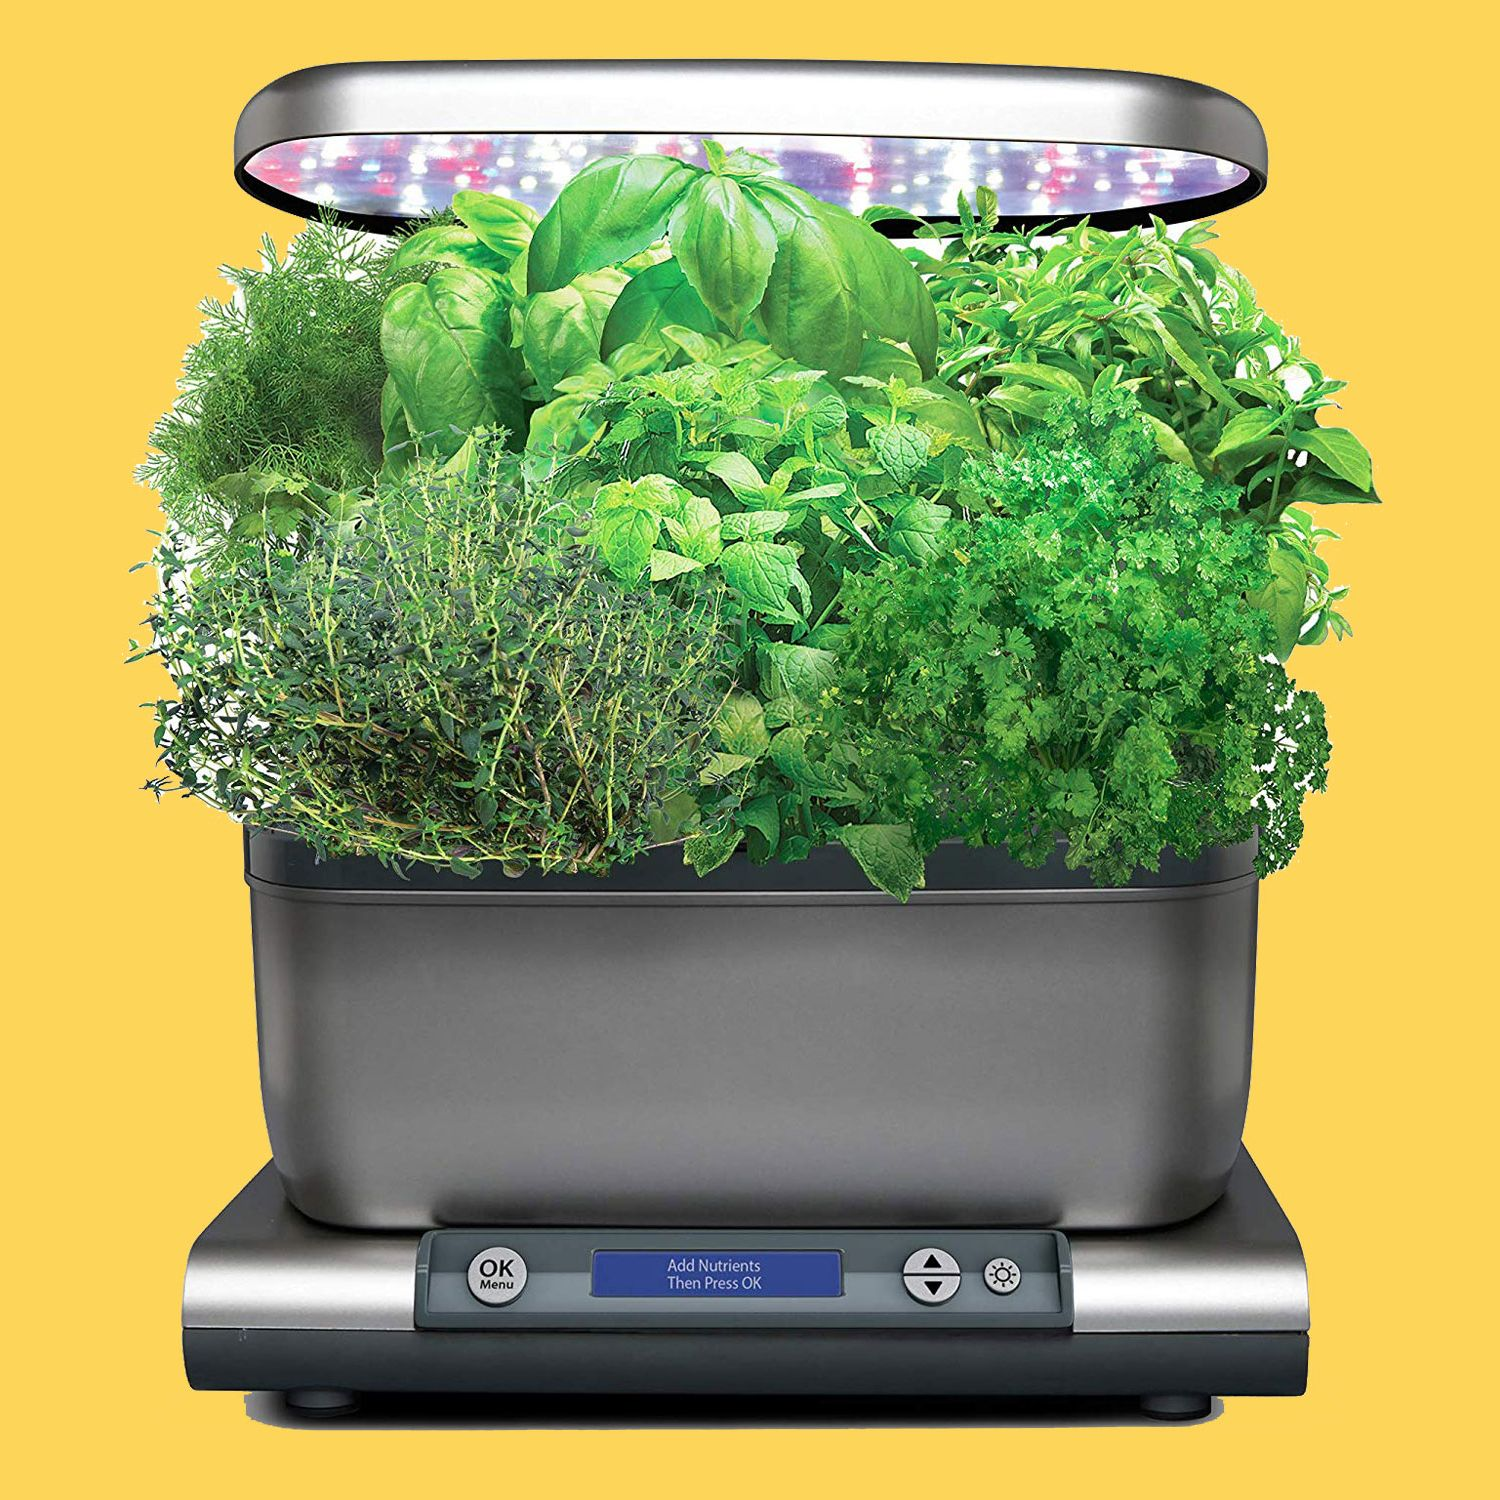 AeroGarden Grows Fresh Herbs and Veggies Year-Round, and It's 47% off Today